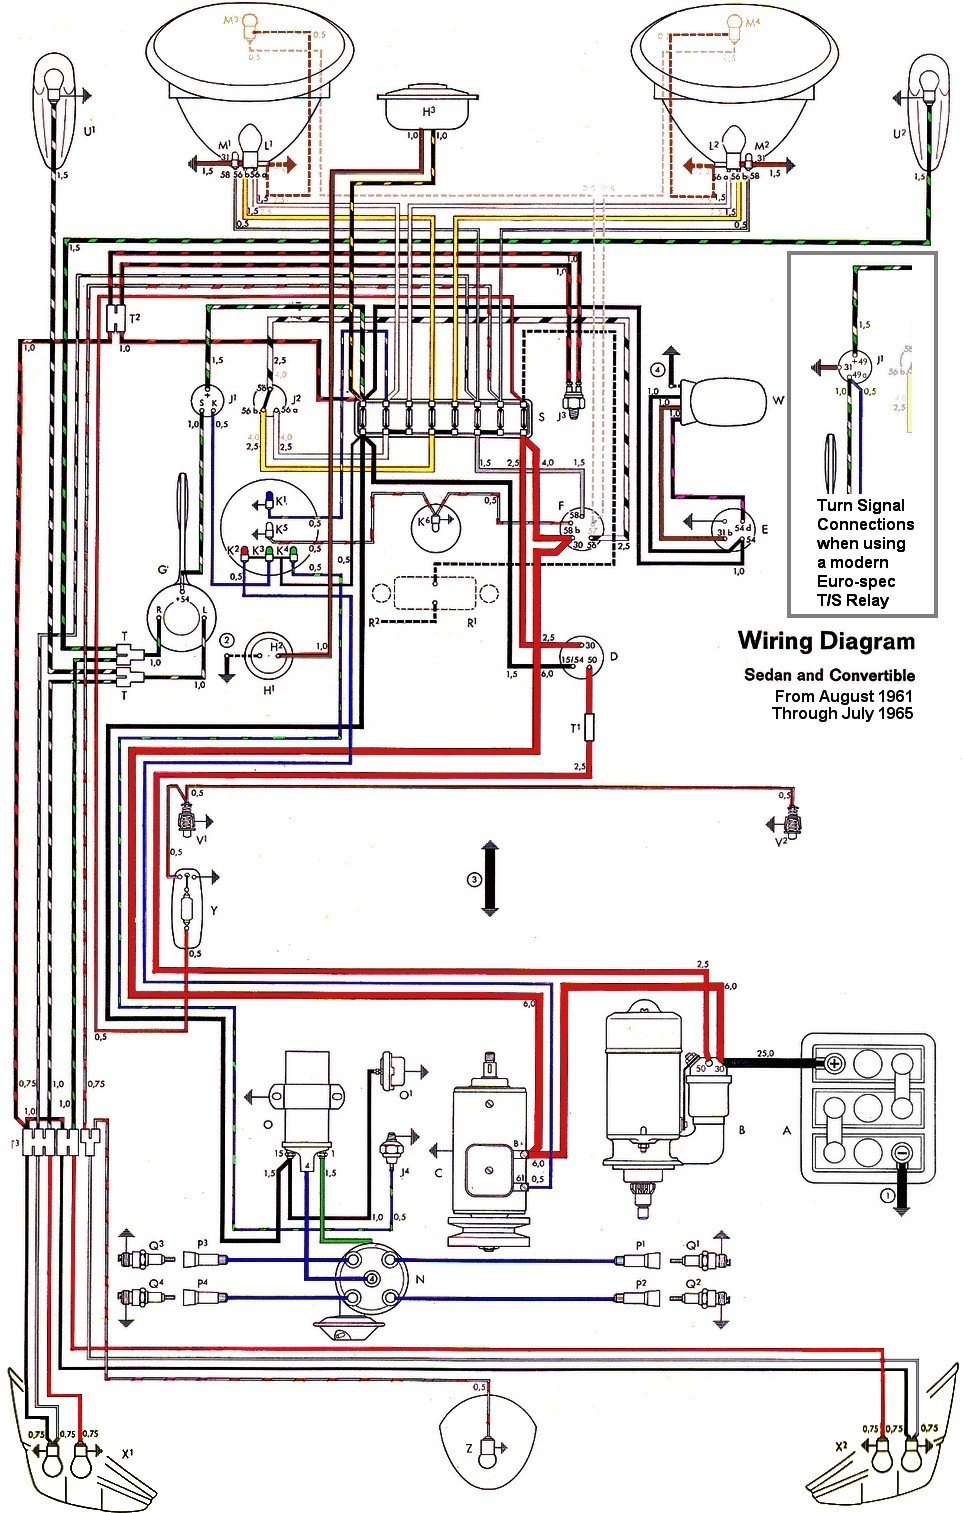 bug_62 65withinset thesamba com type 1 wiring diagrams blinker wiring diagram at creativeand.co